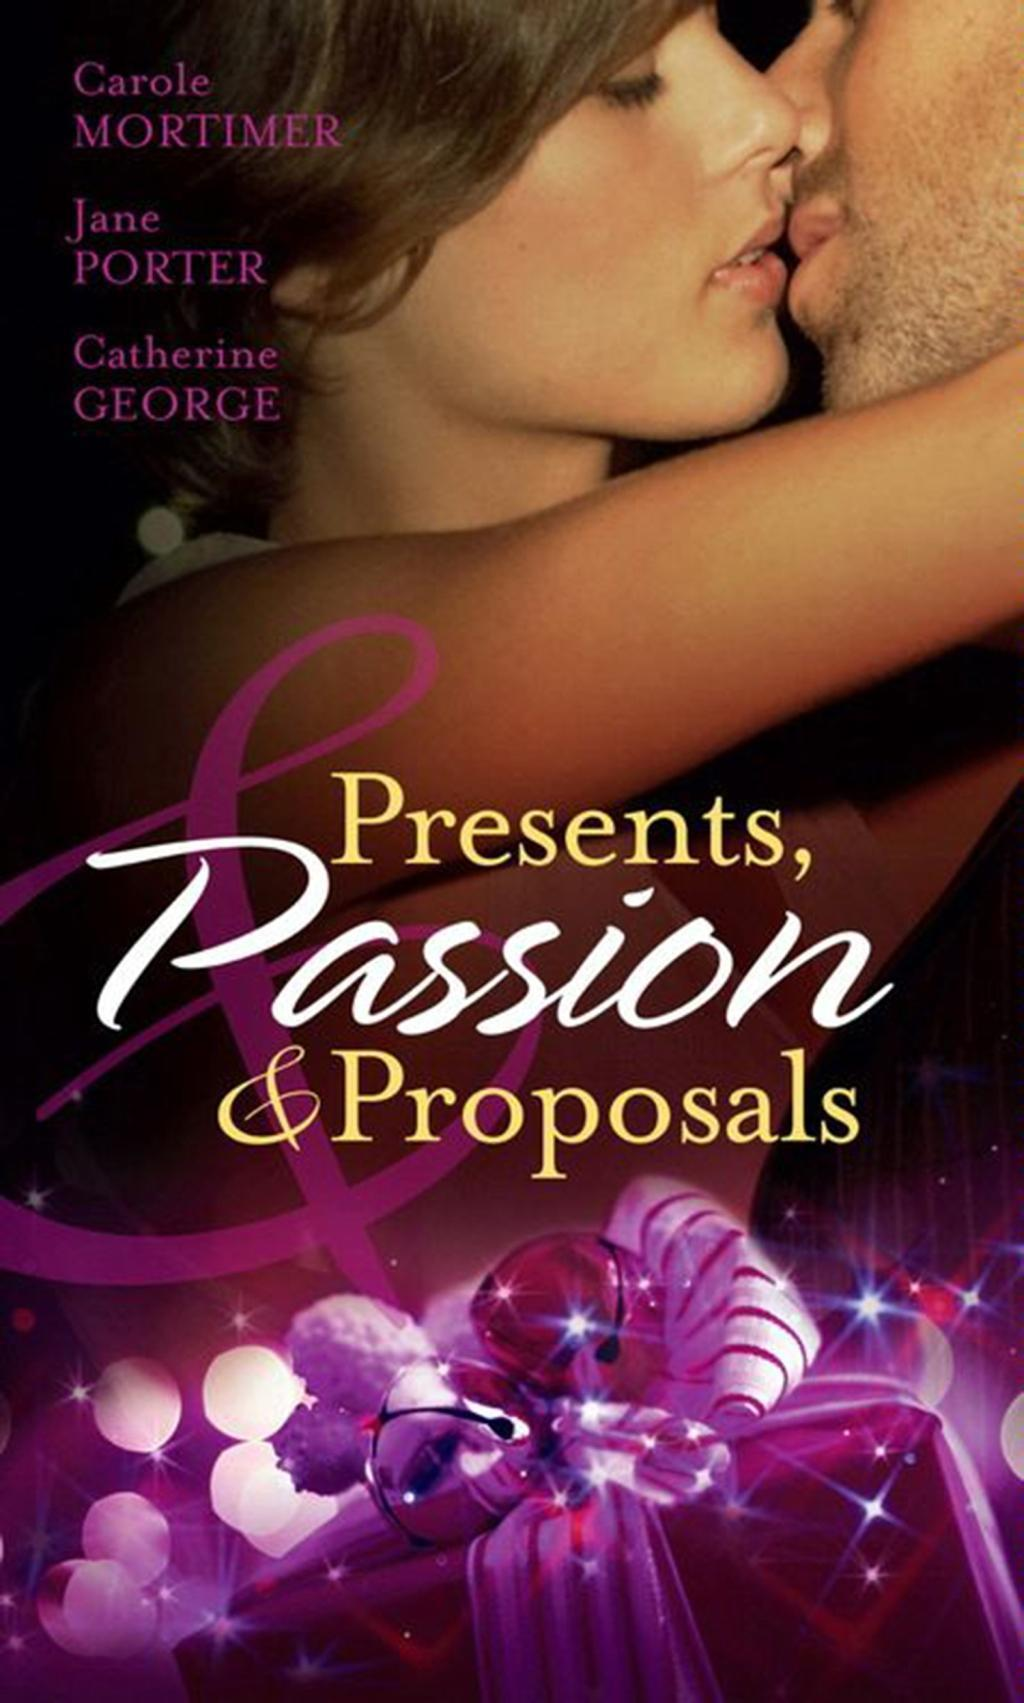 Presents, Passion and Proposals: The Billionaire's Christmas Gift / One Christmas Night in Venice / Snowbound with the Millionaire (Mills & Boon M&B)